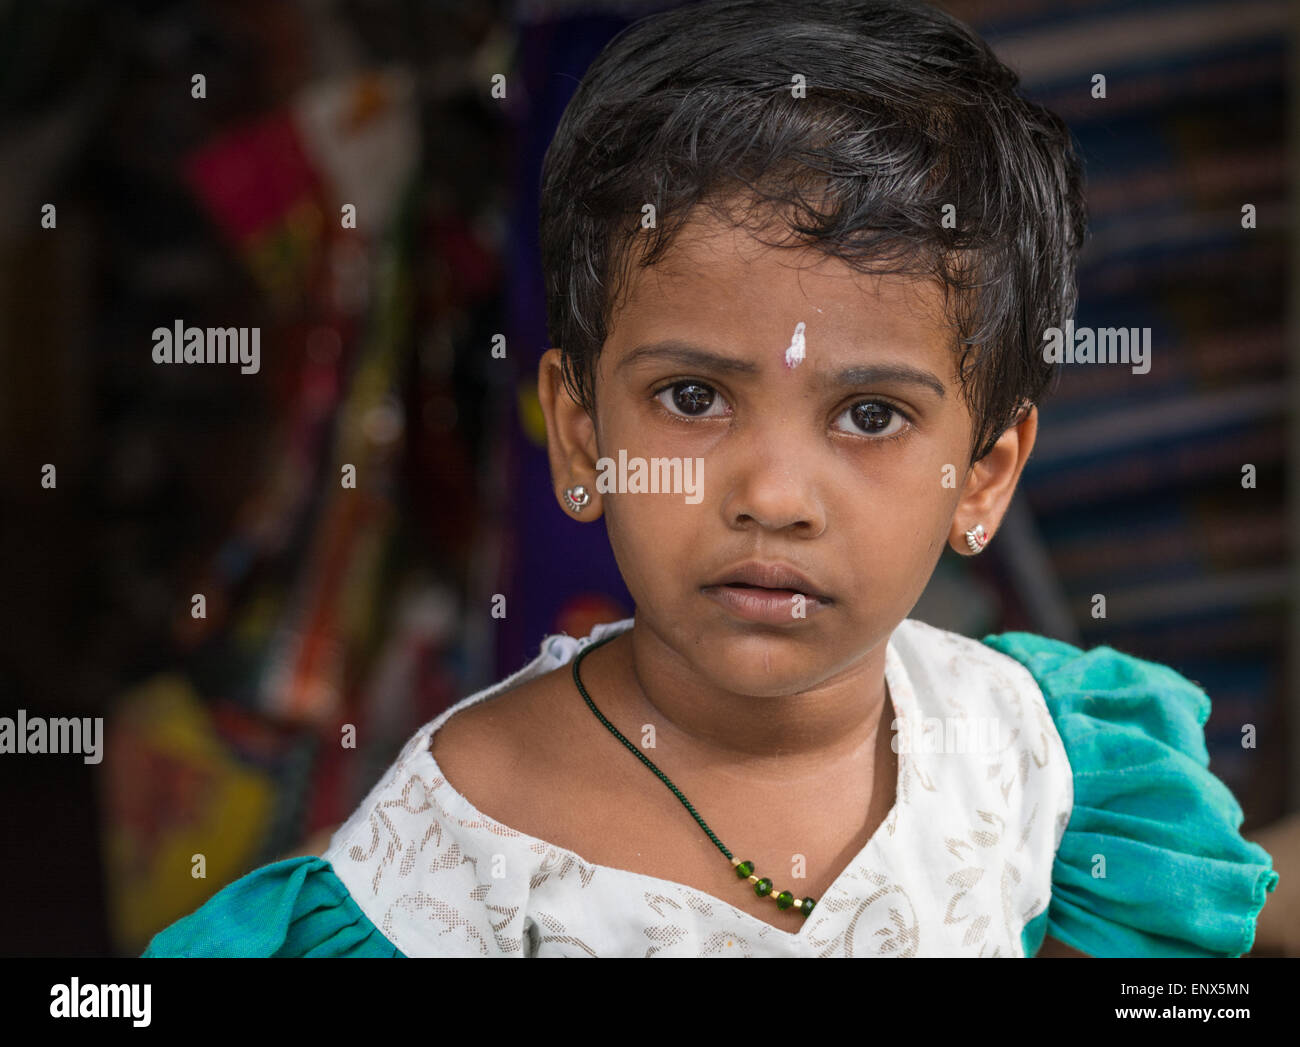 Portrait of a young Indian girl in a market in Tiruvannamalai, India - Stock Image